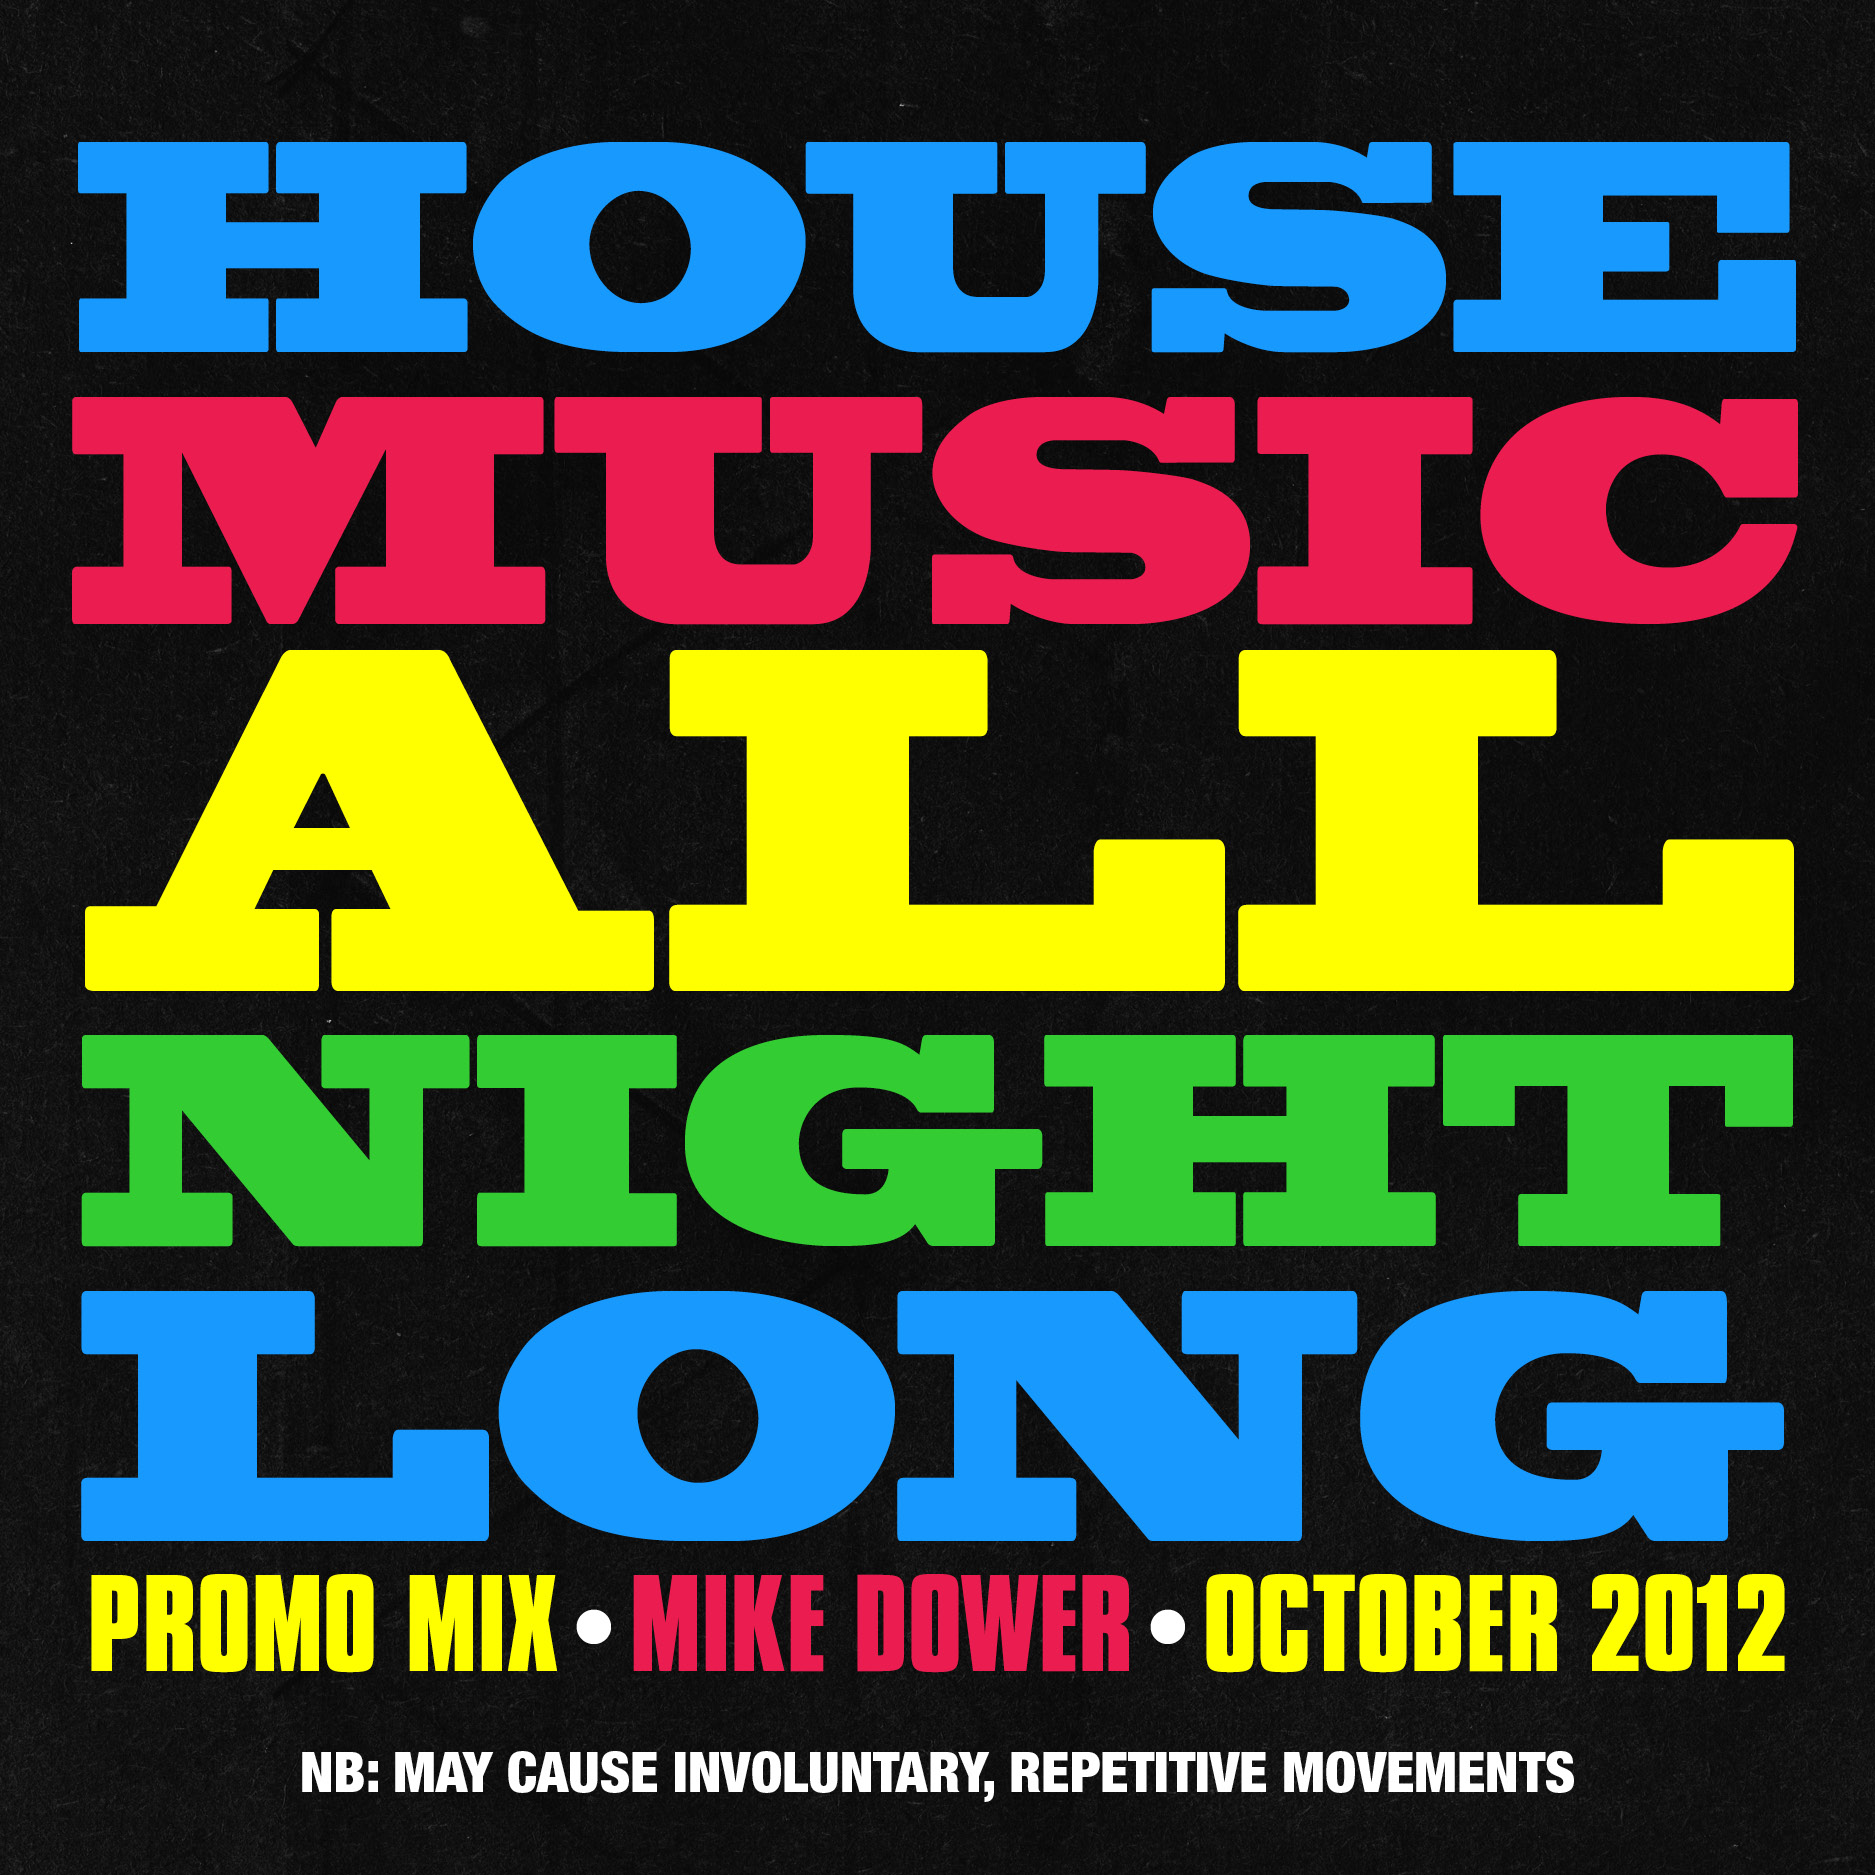 Music picks delectable dower delivery mikey d for House music all night long